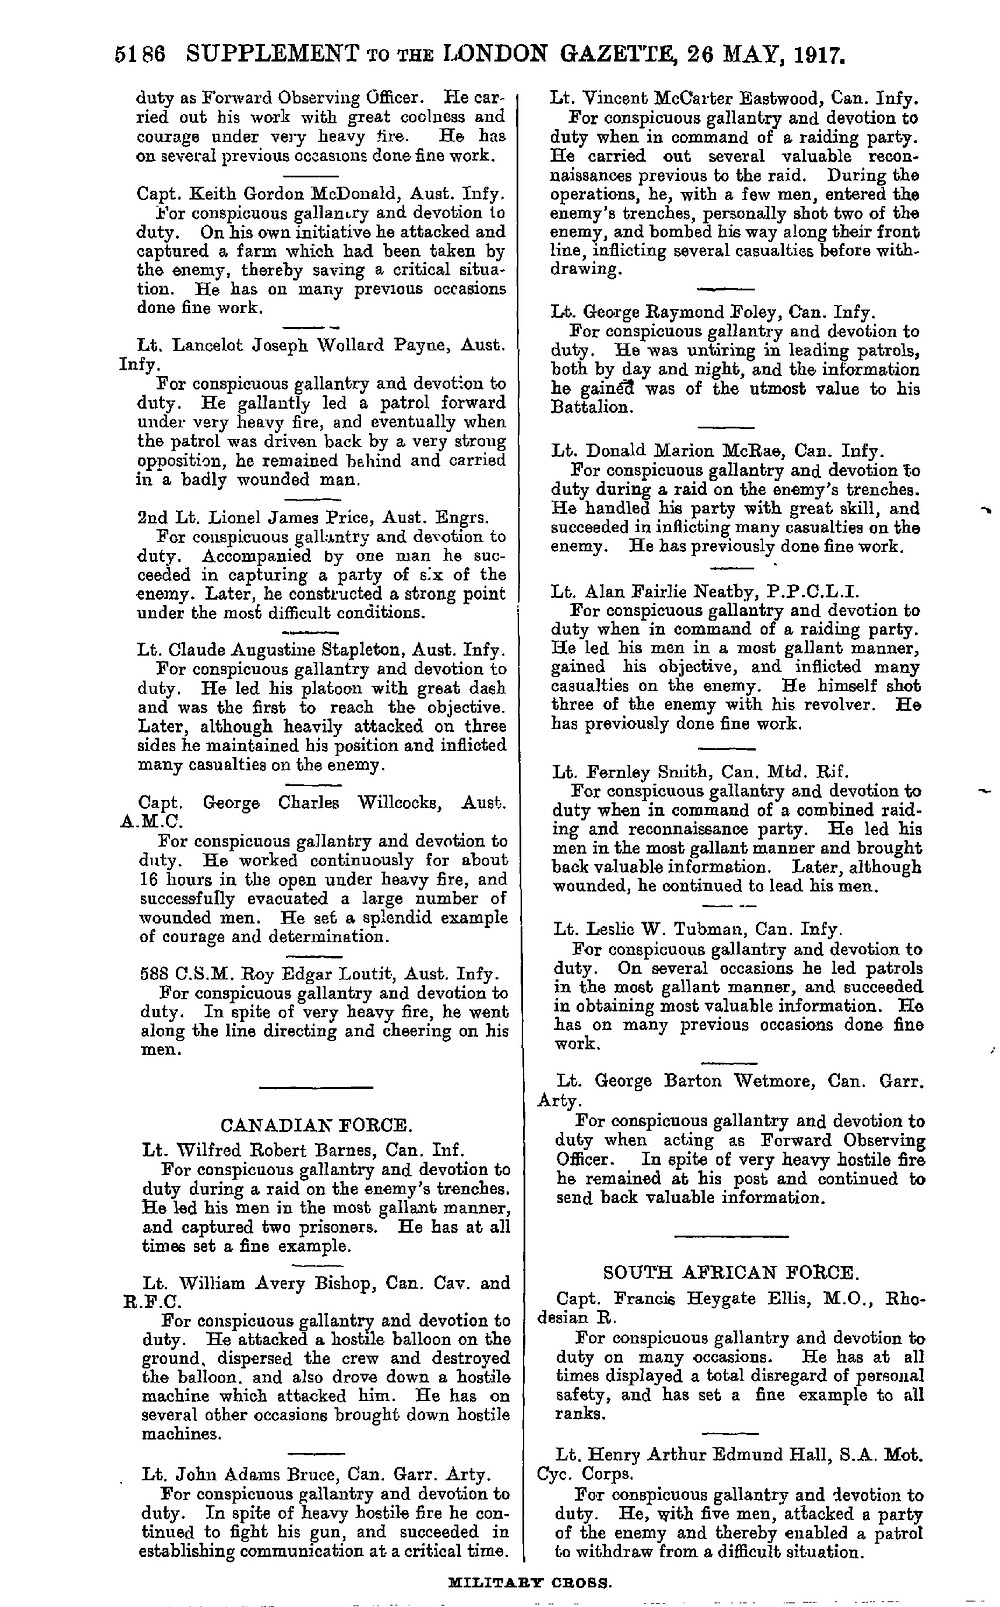 Military Cross Recipients London Gazette May 26,1917